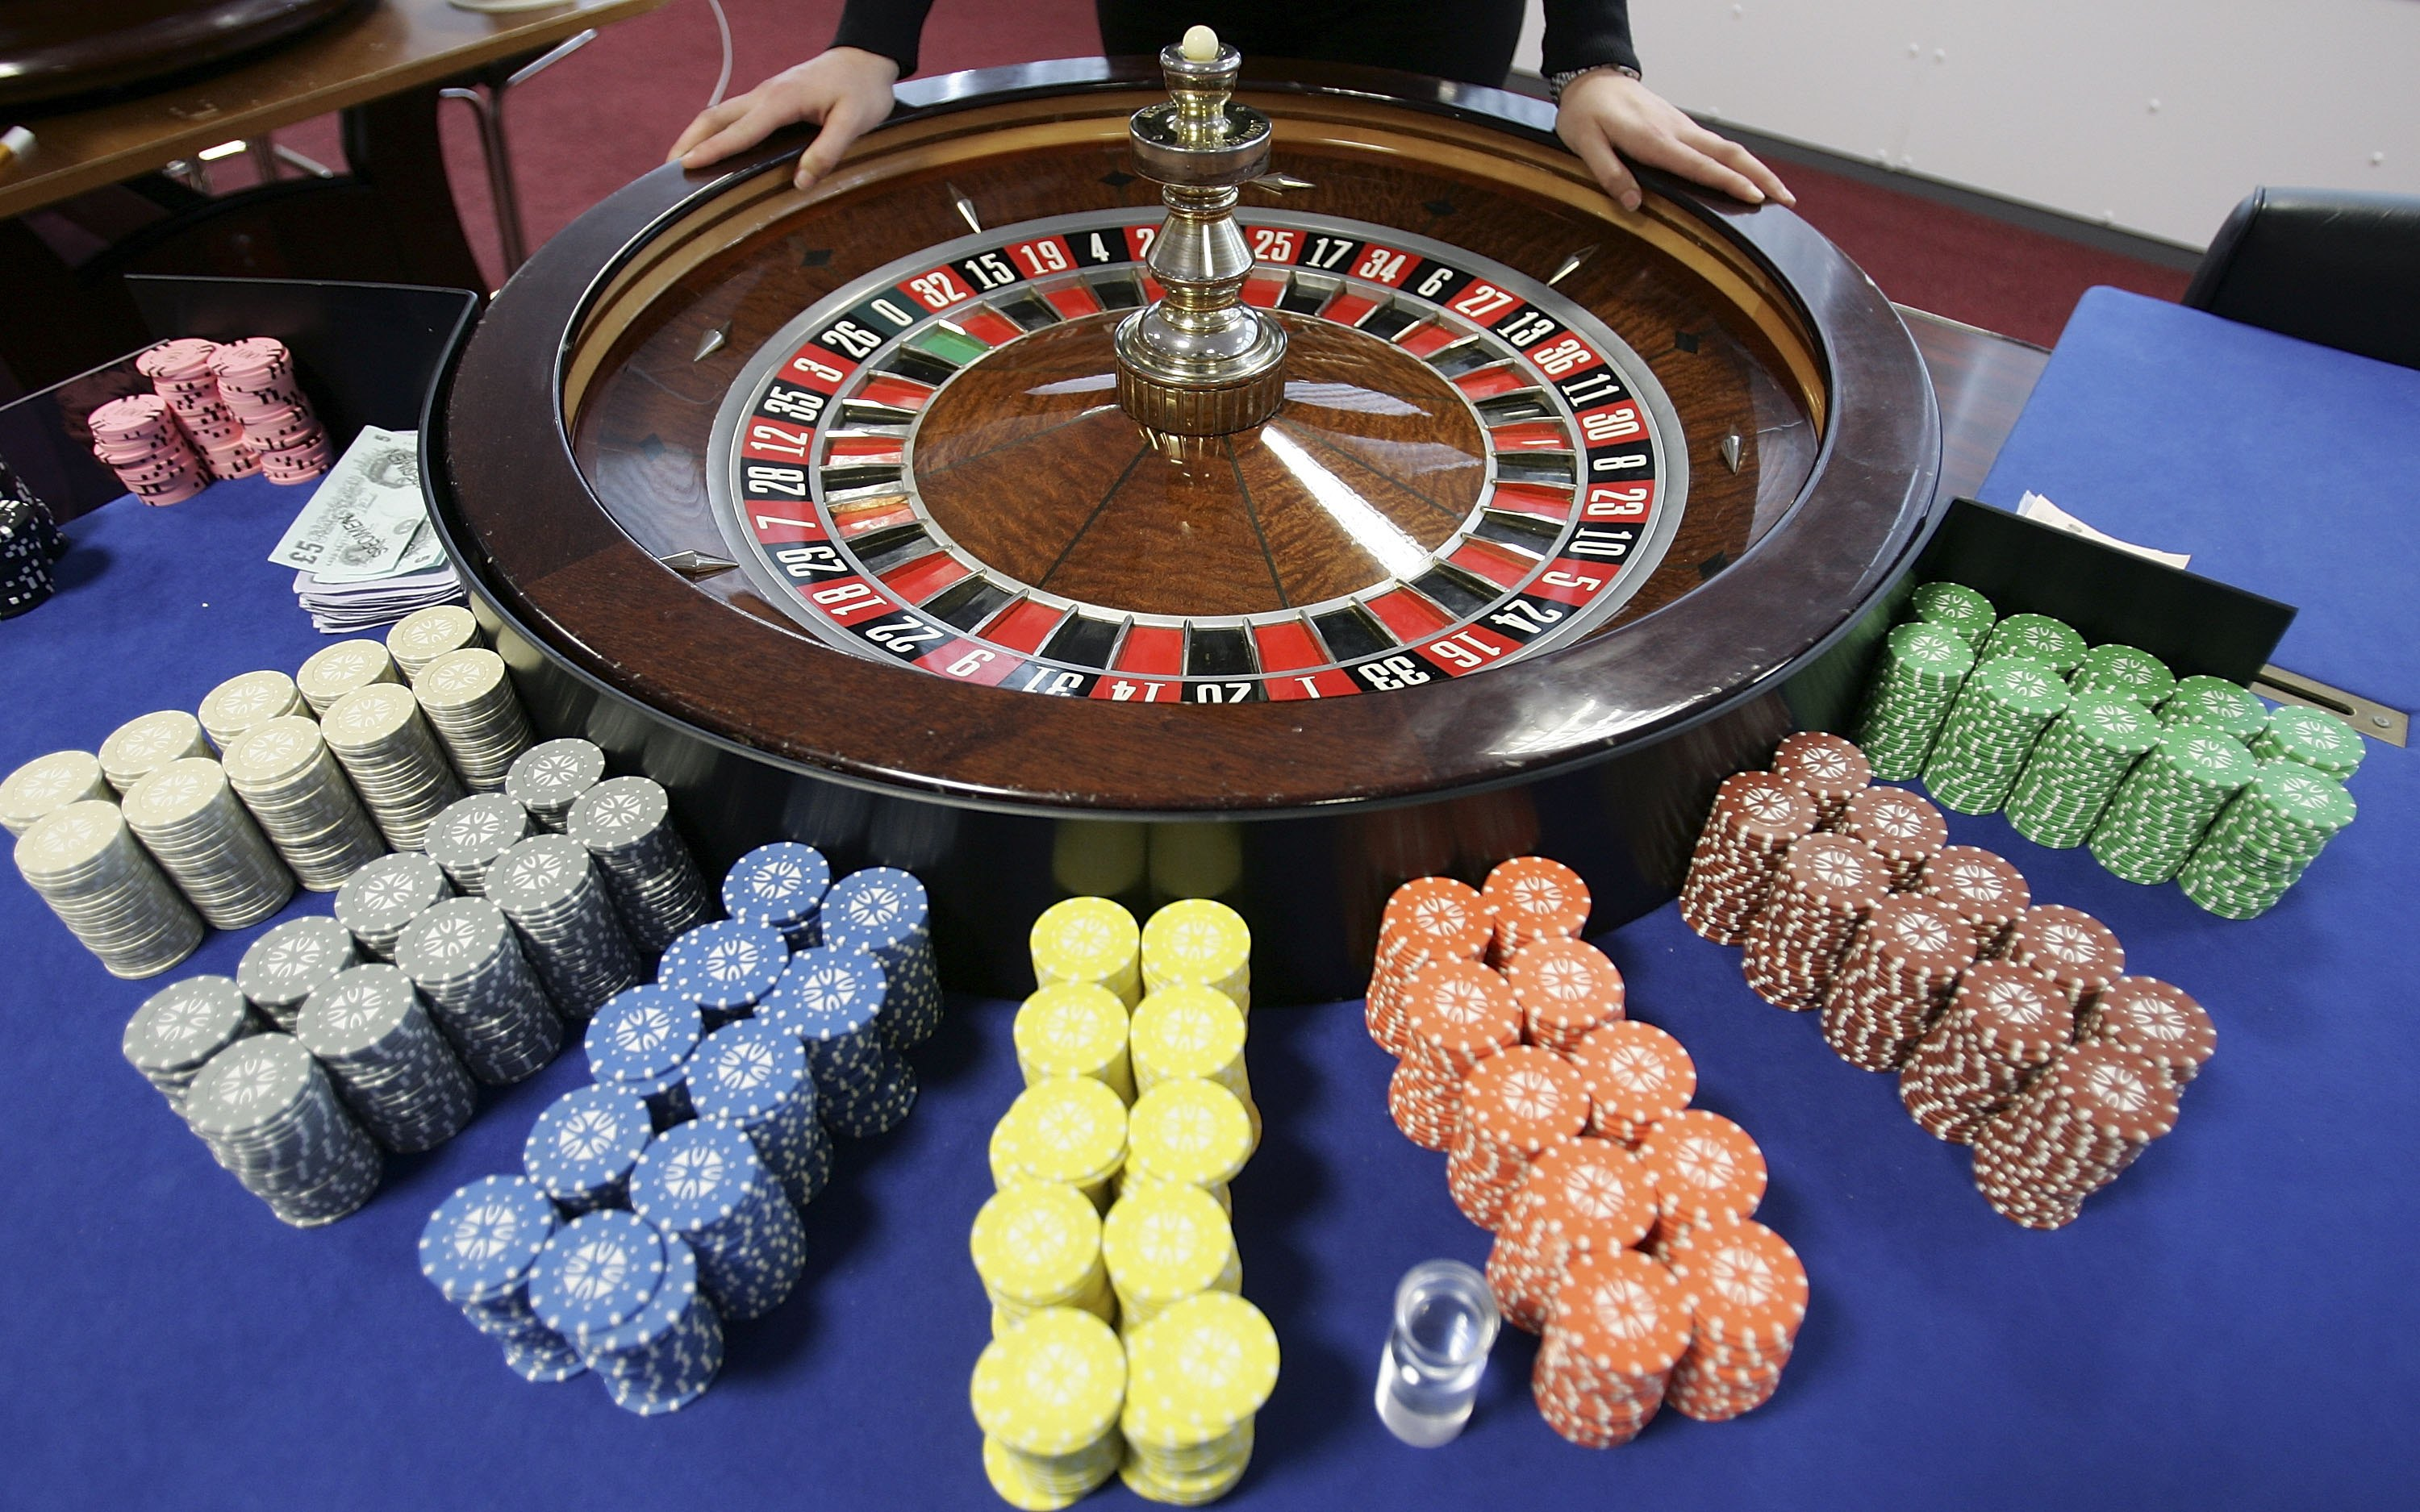 File image of Roulette table